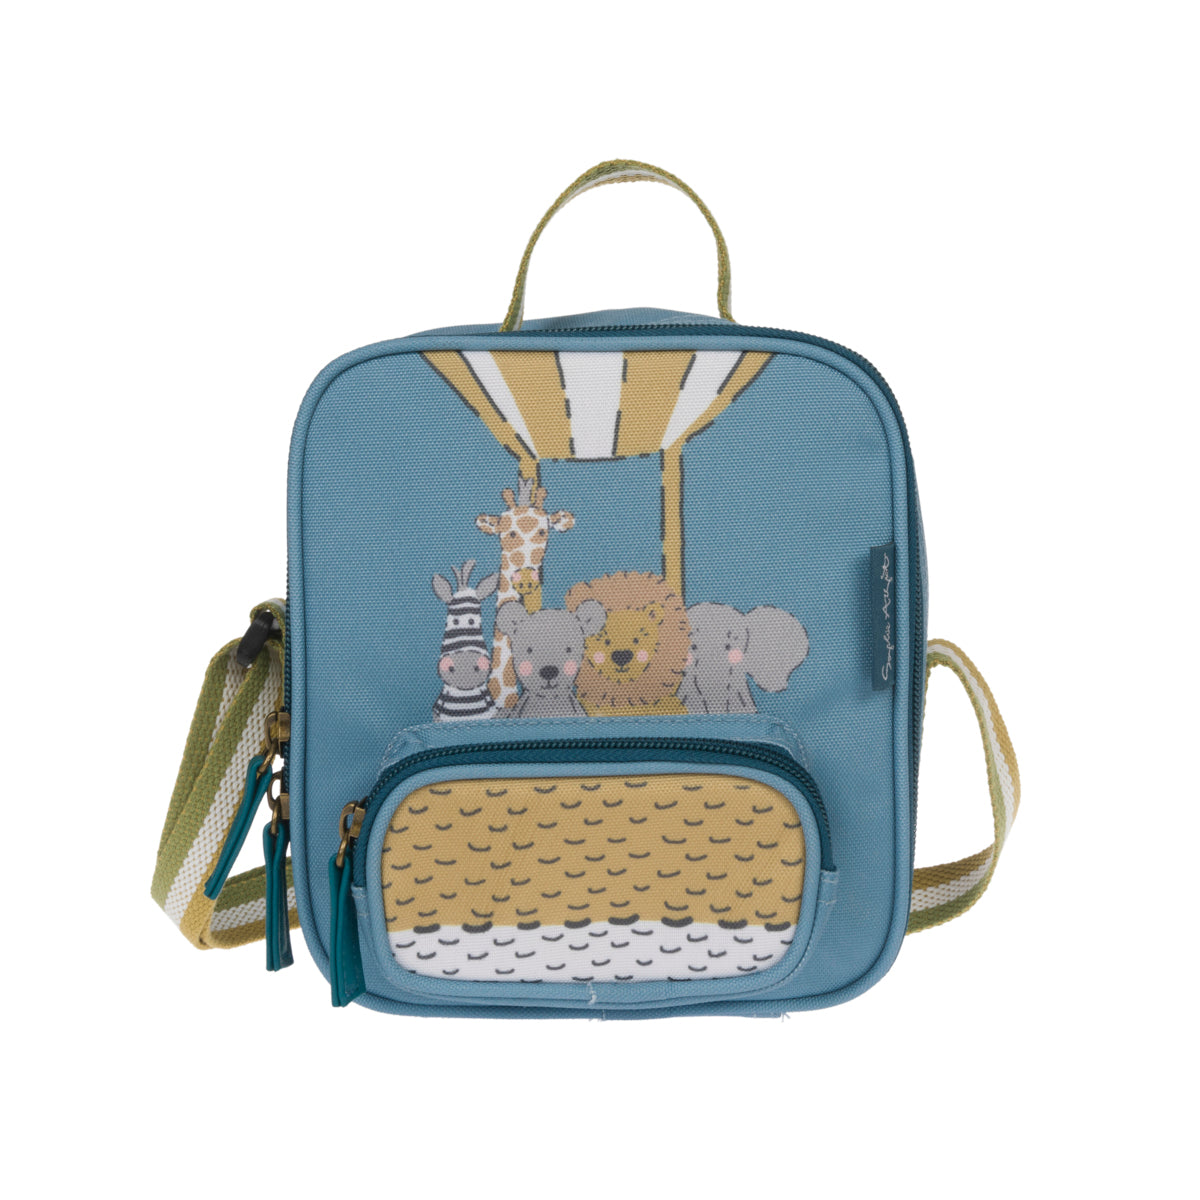 Bears & Balloons Mini Lunch Bag by Sophie Allport